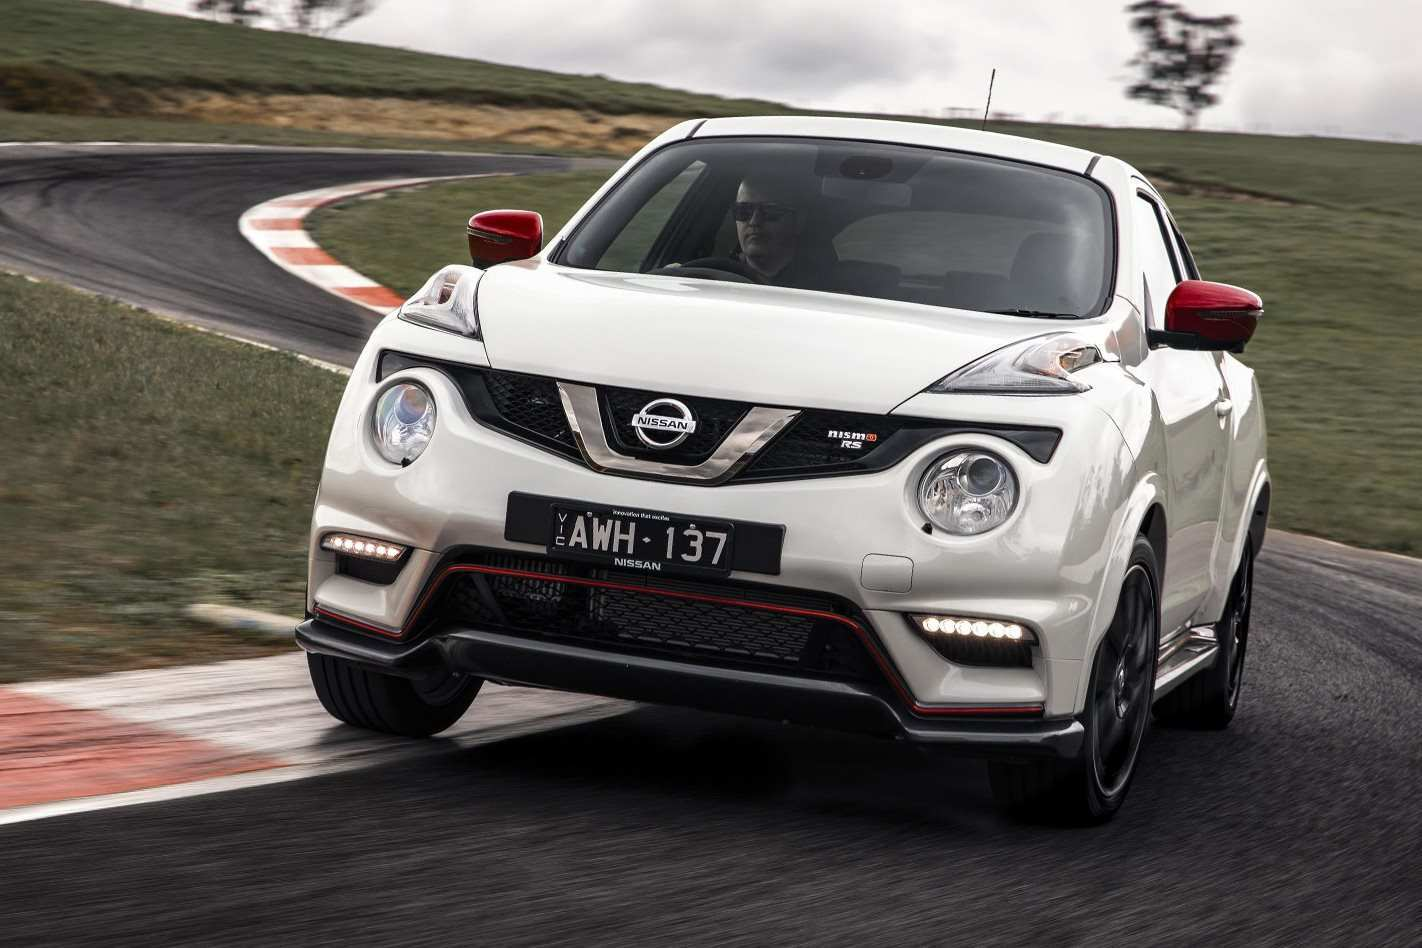 33 The 2019 Nissan Juke Review Research New